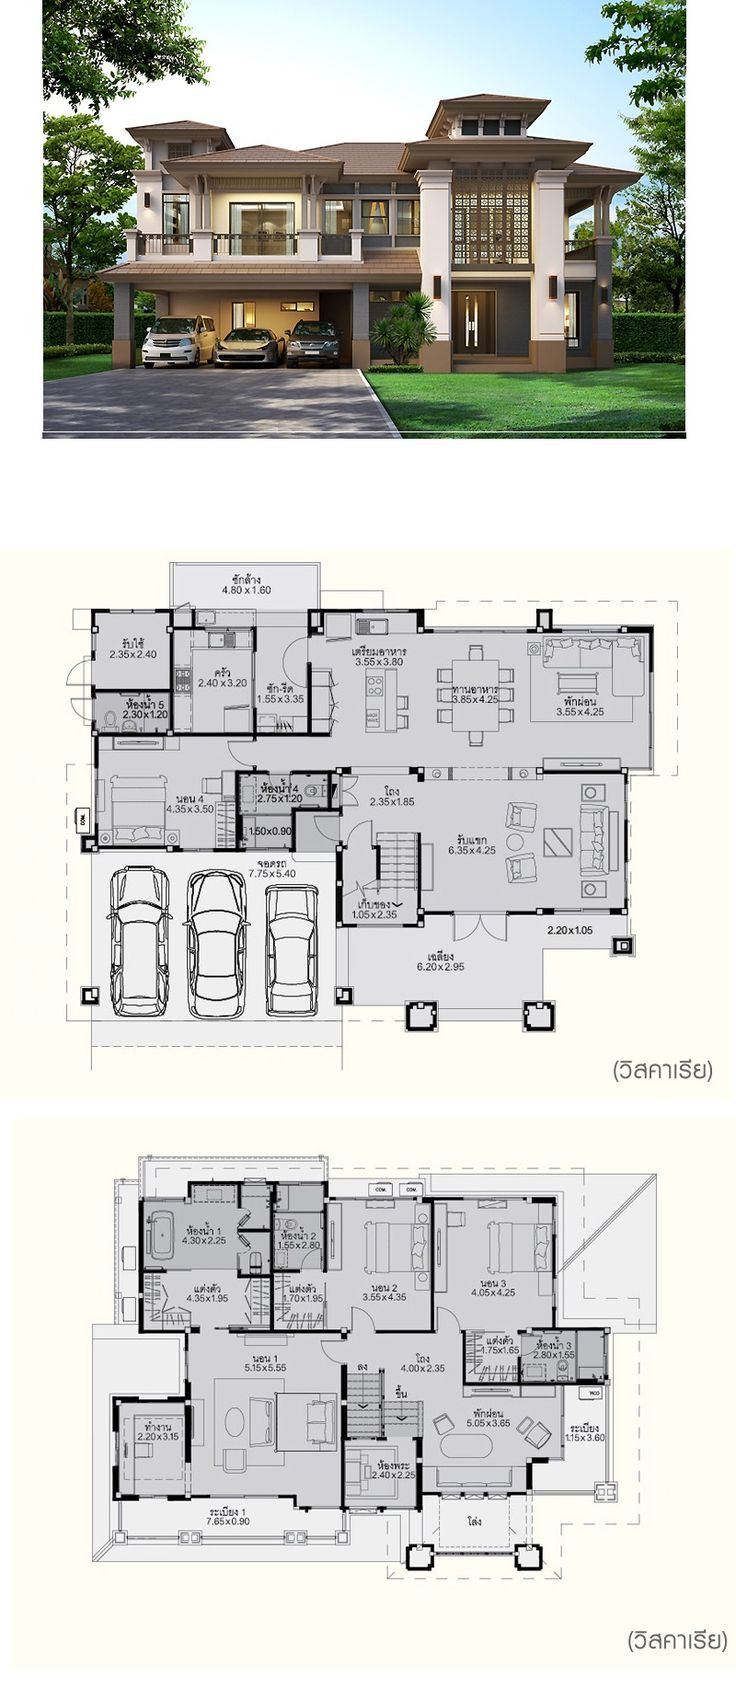 Furthermore medieval manor house on floor plans with central - Minus An Enclosed Garage